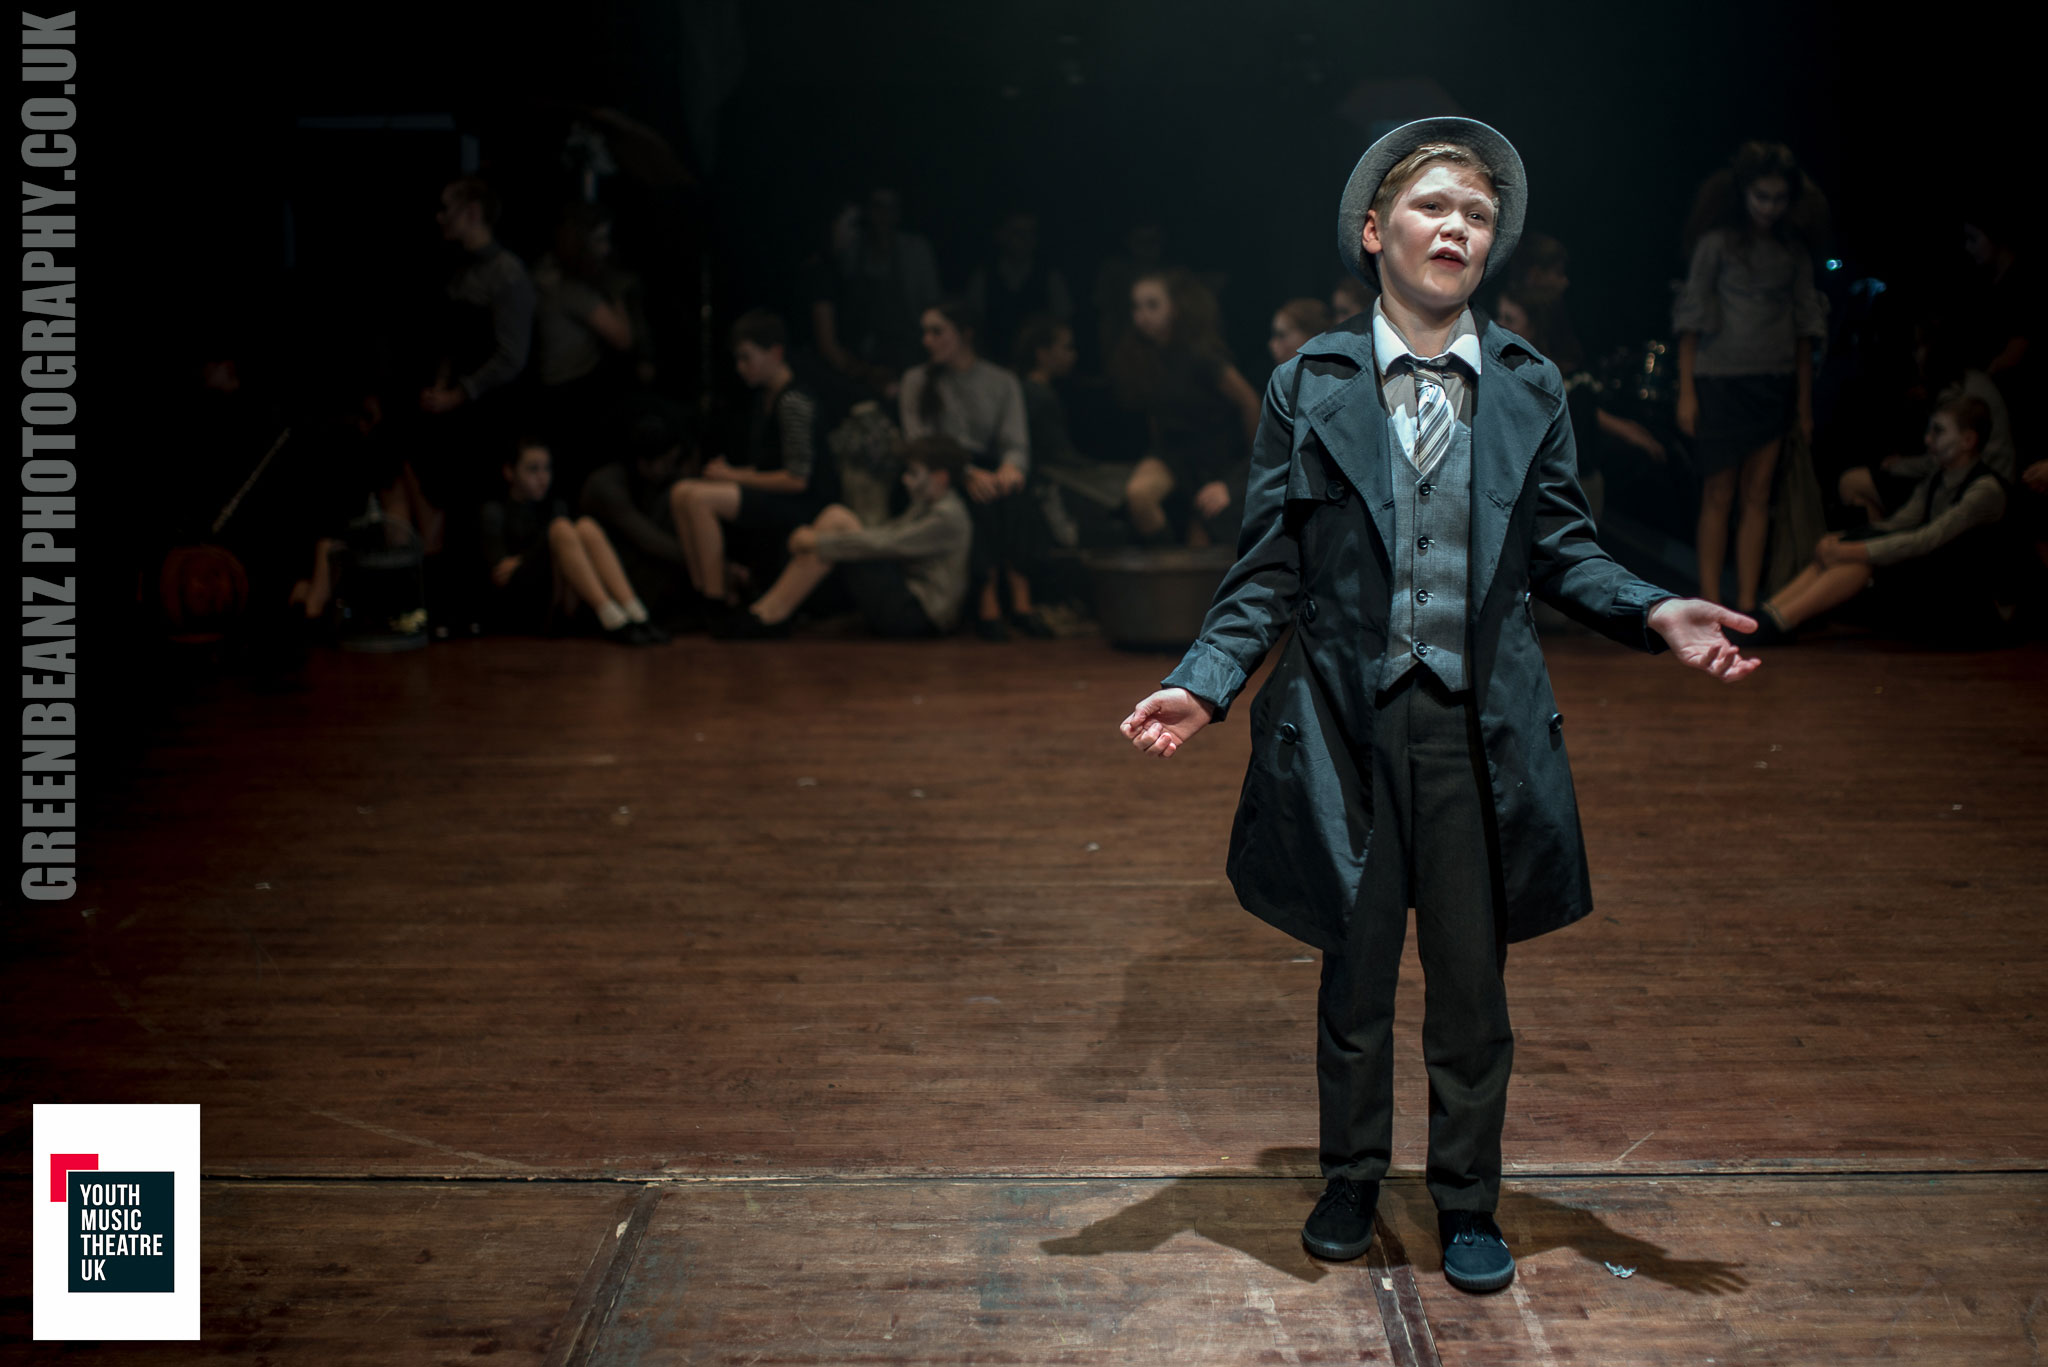 The young narrator of YMTUK's Cautionary Tales at Plymouth's Barbican Theatre